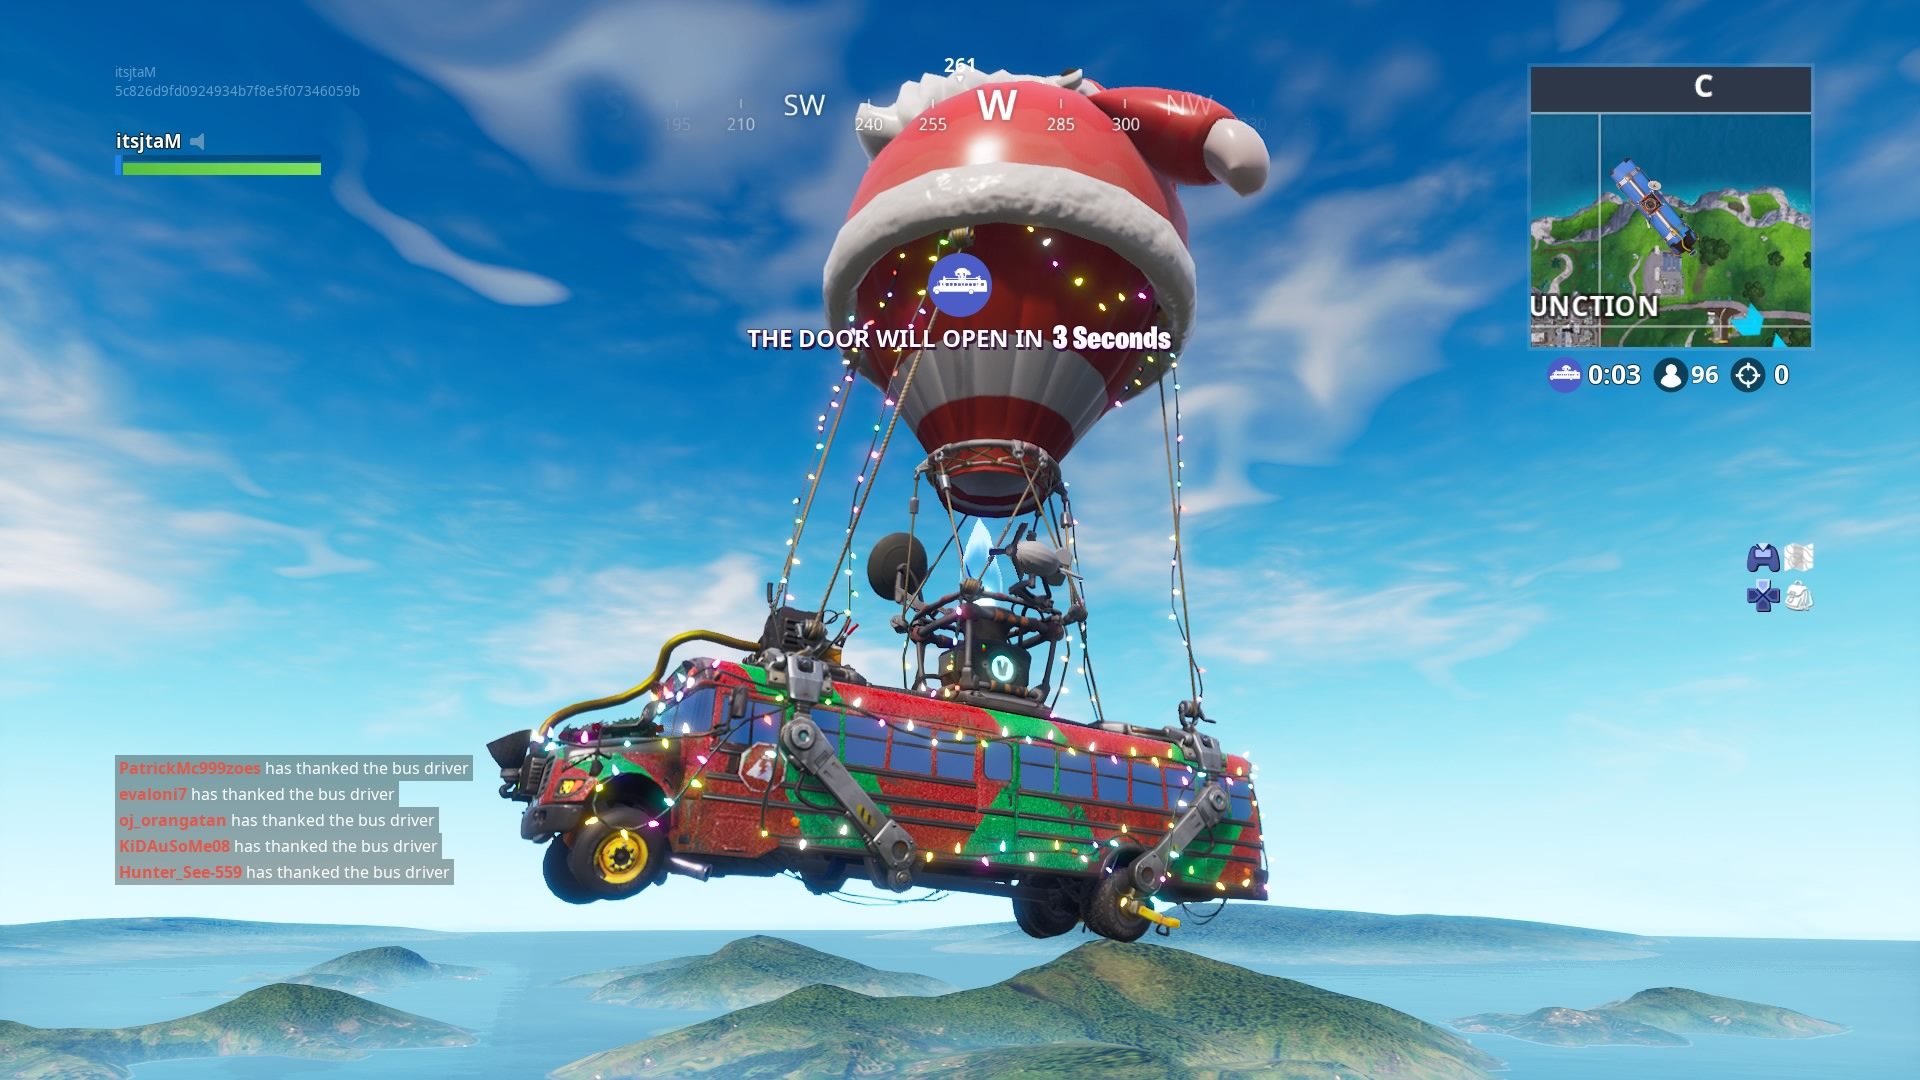 fortnite season 7 santa bus wallpaper 66486